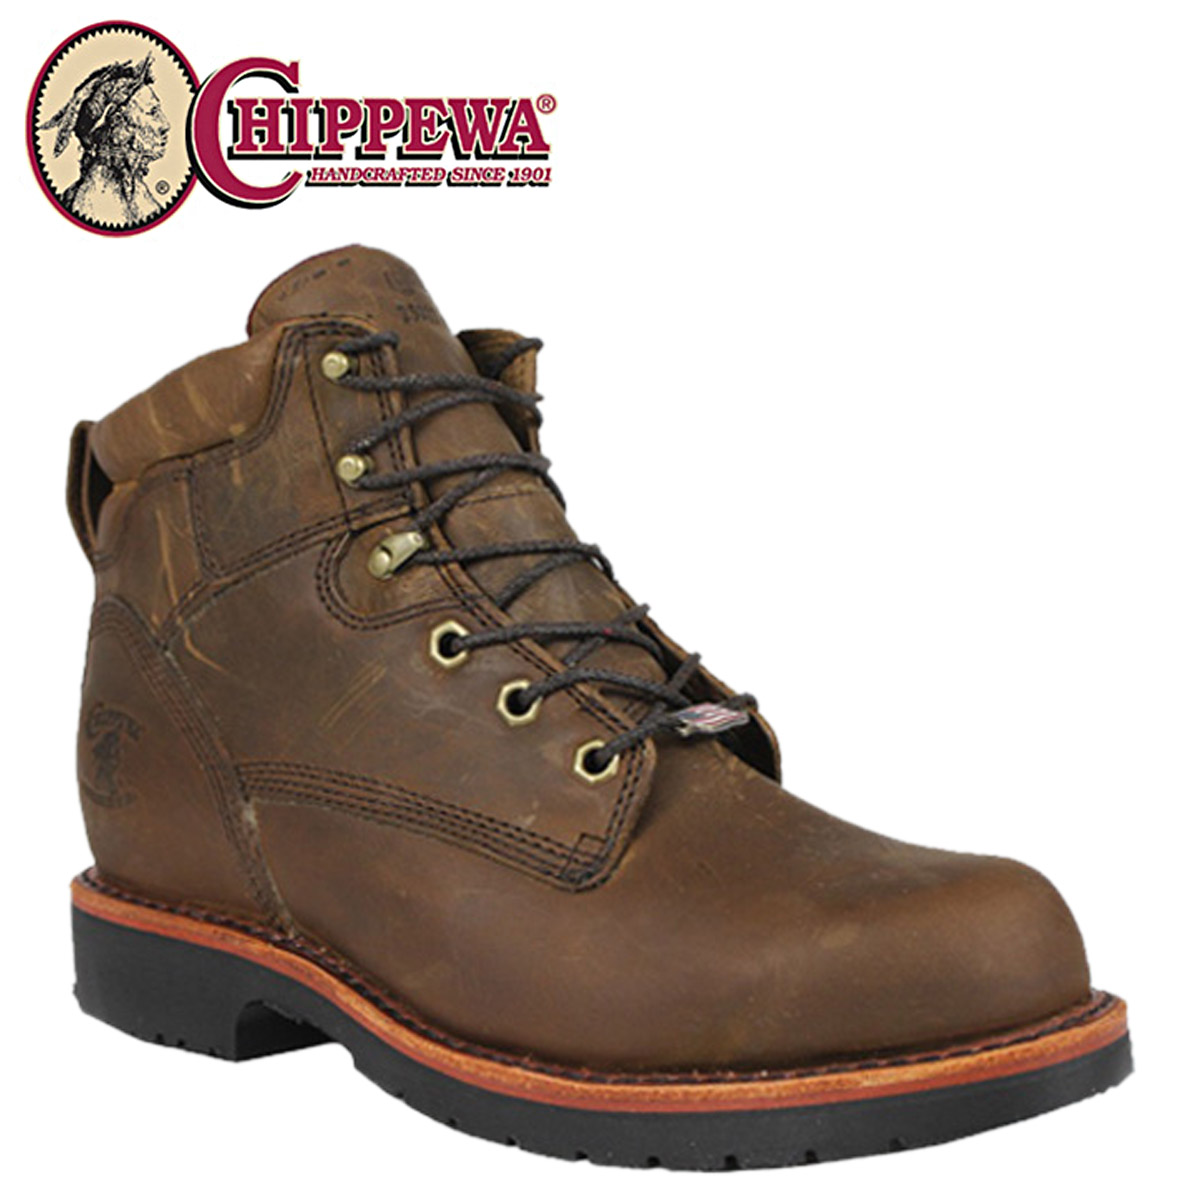 dc6de7f9848 [SOLD OUT]-Chippewa CHIPPEWA Bay Apache 25202, 6 inch work boots 6INCH BAY  APACHE 2 wise leather men's